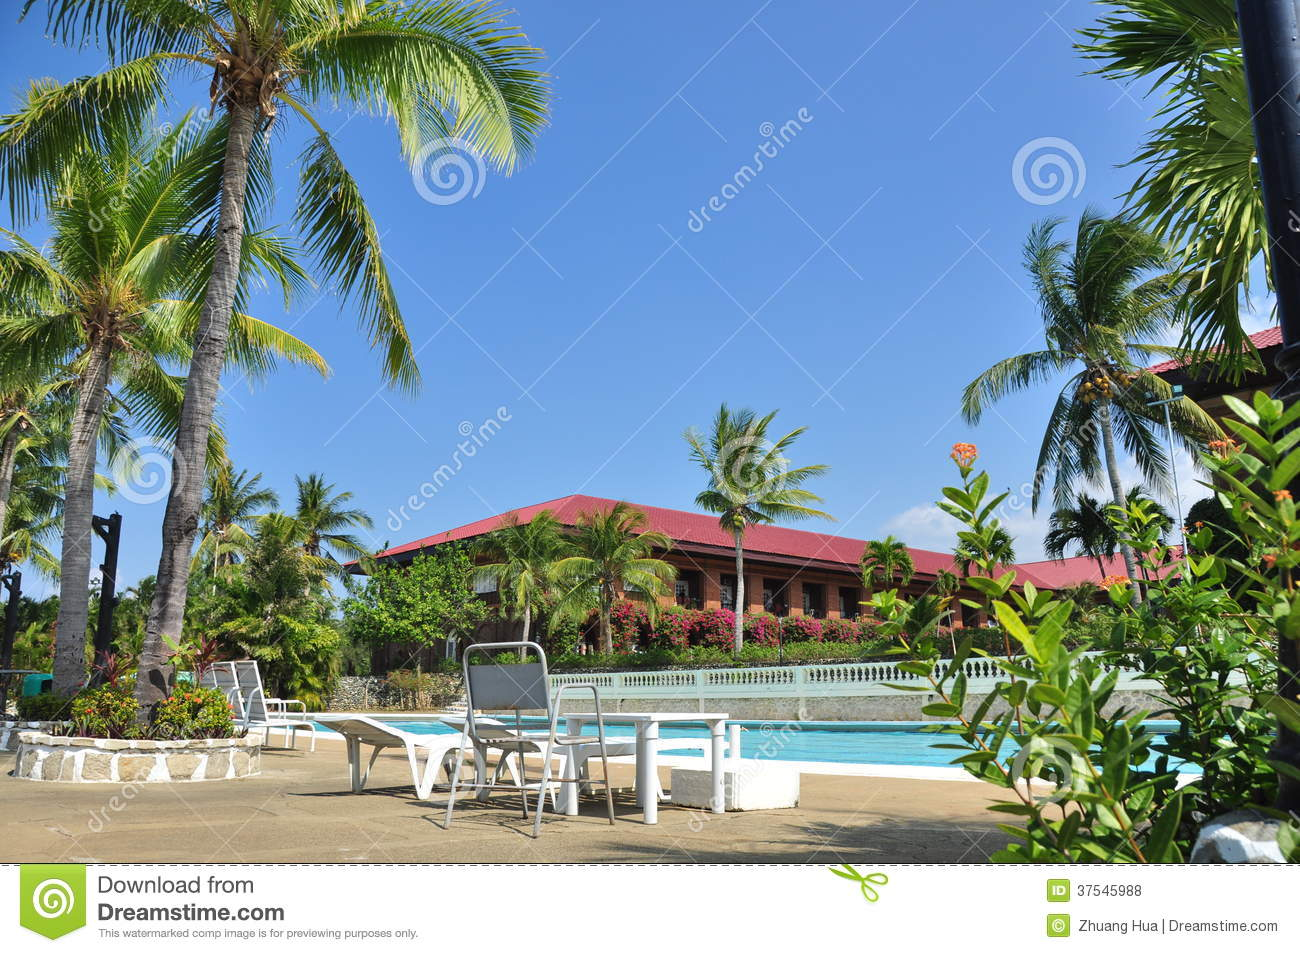 Beach Hotel Resort Swimming Pool Royalty Free Stock Photos Image 37545988